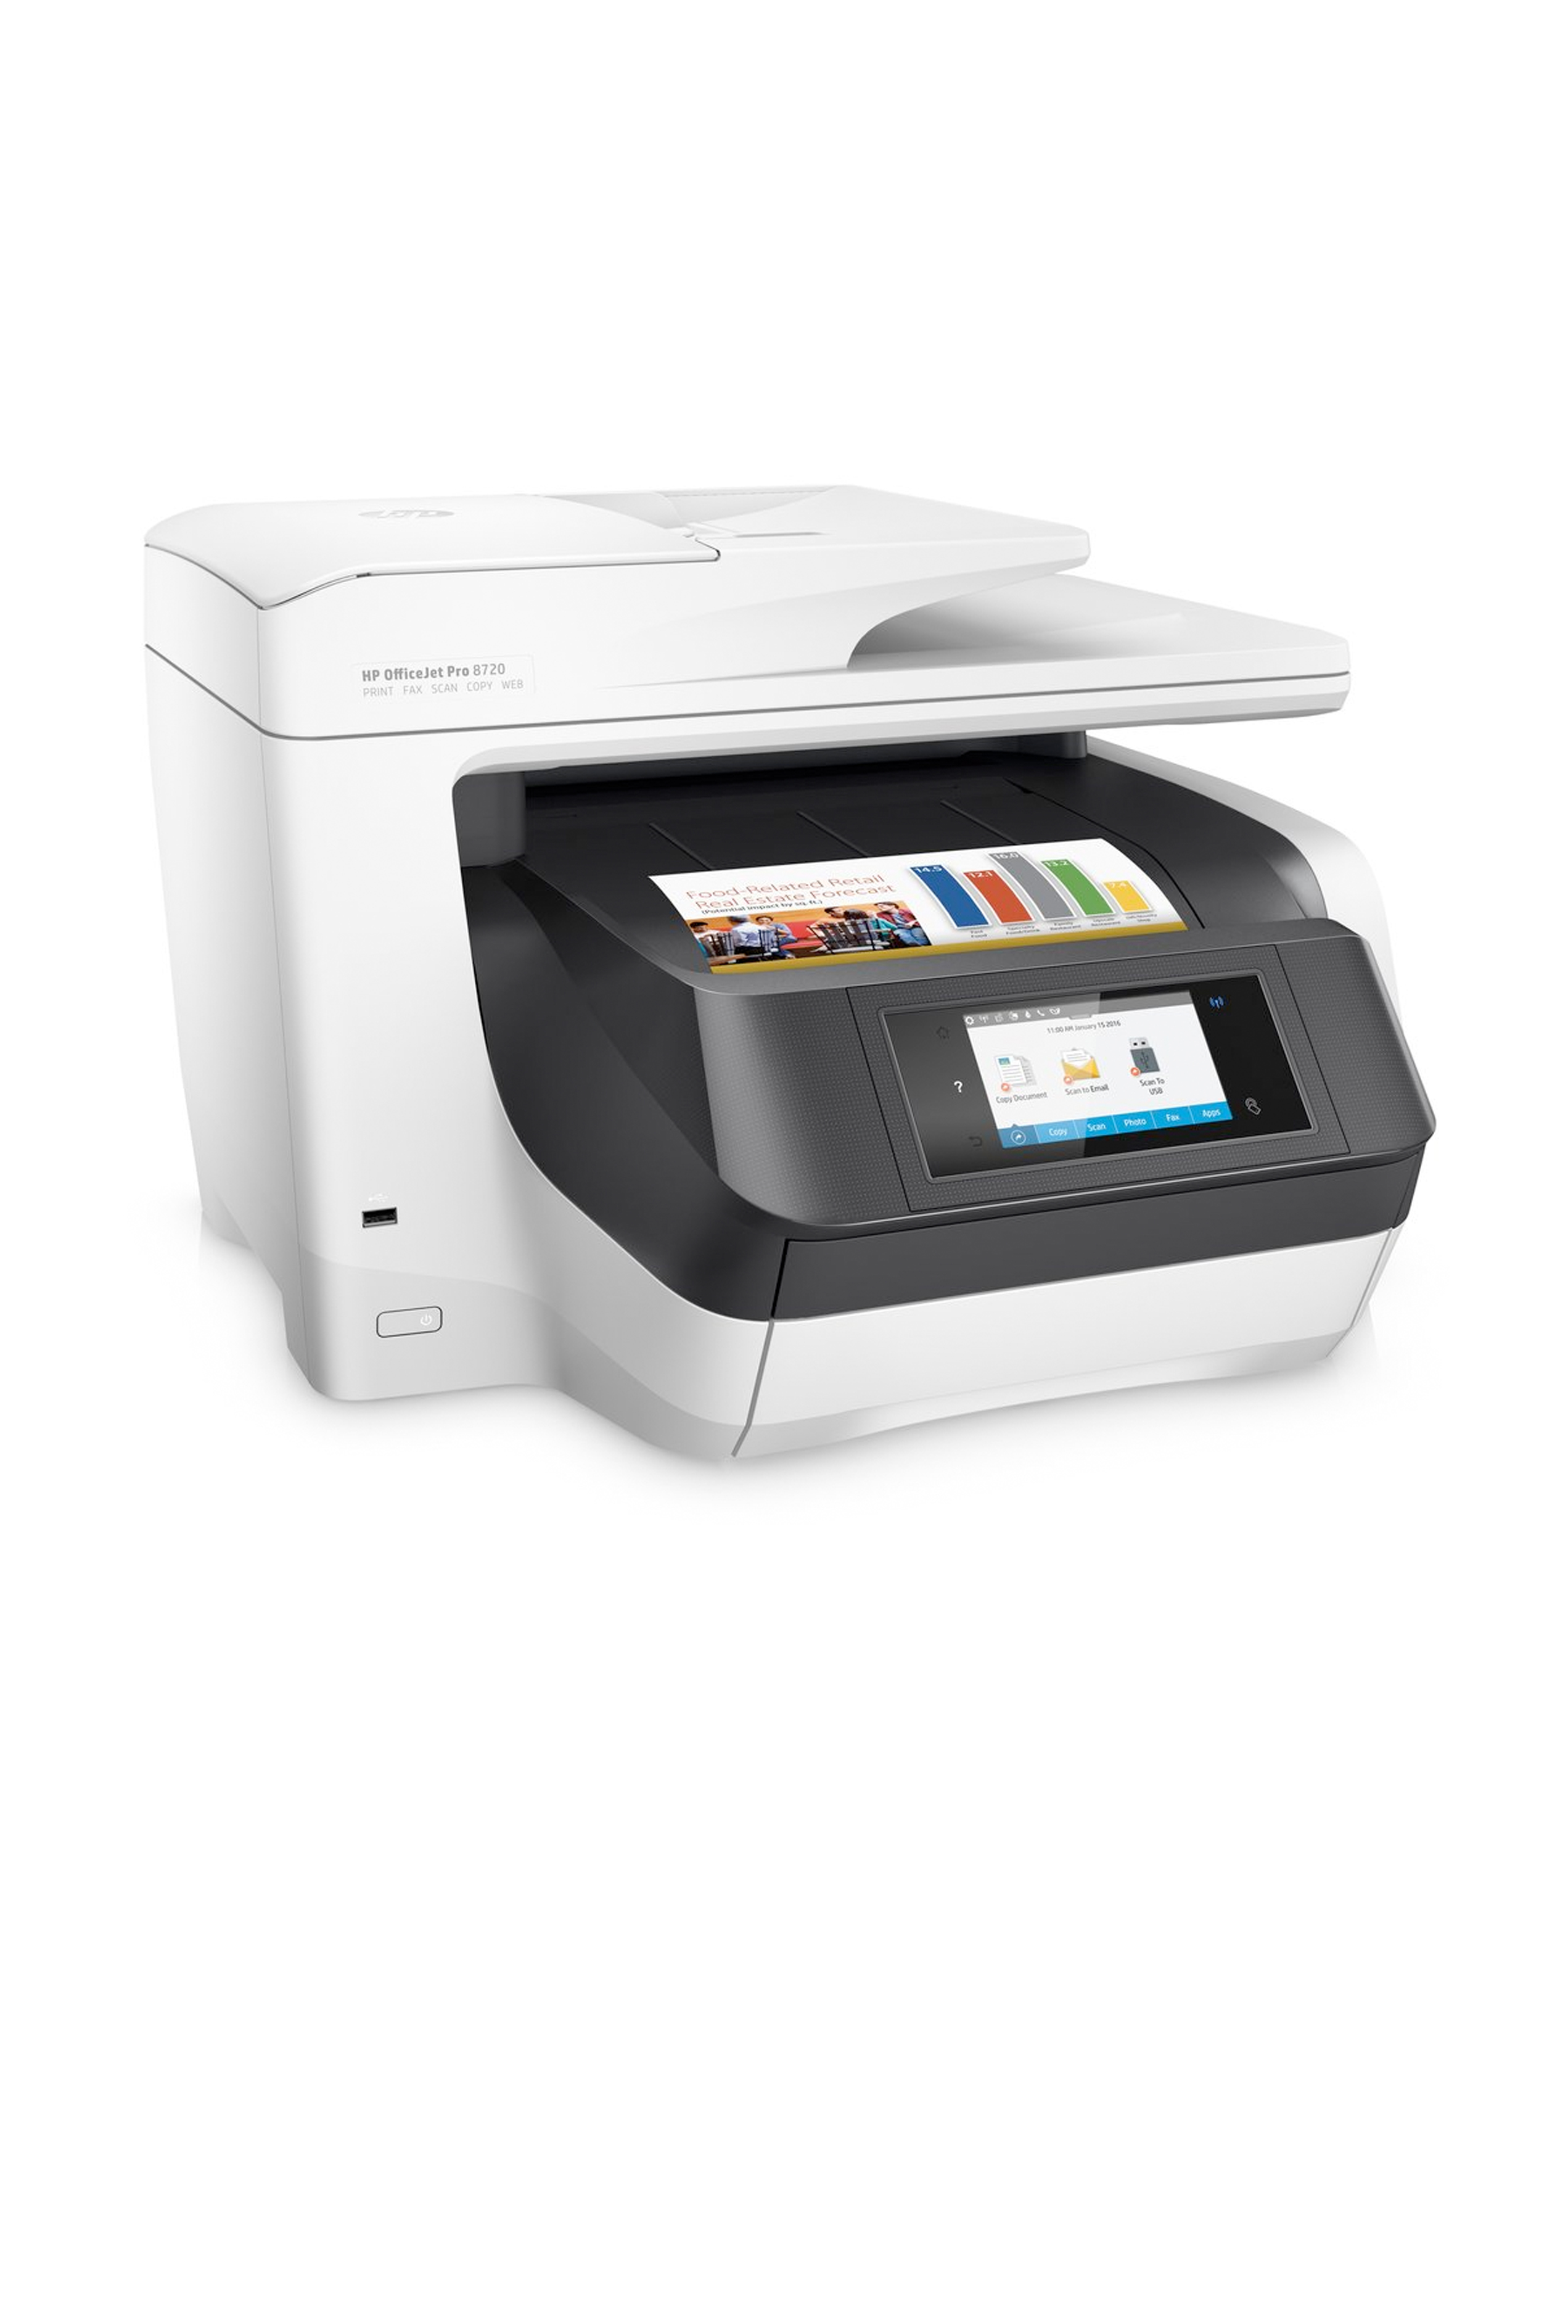 Instant HP OfficeJet Pro 8720 All-in-One Wireless Printer with Mobile Printing